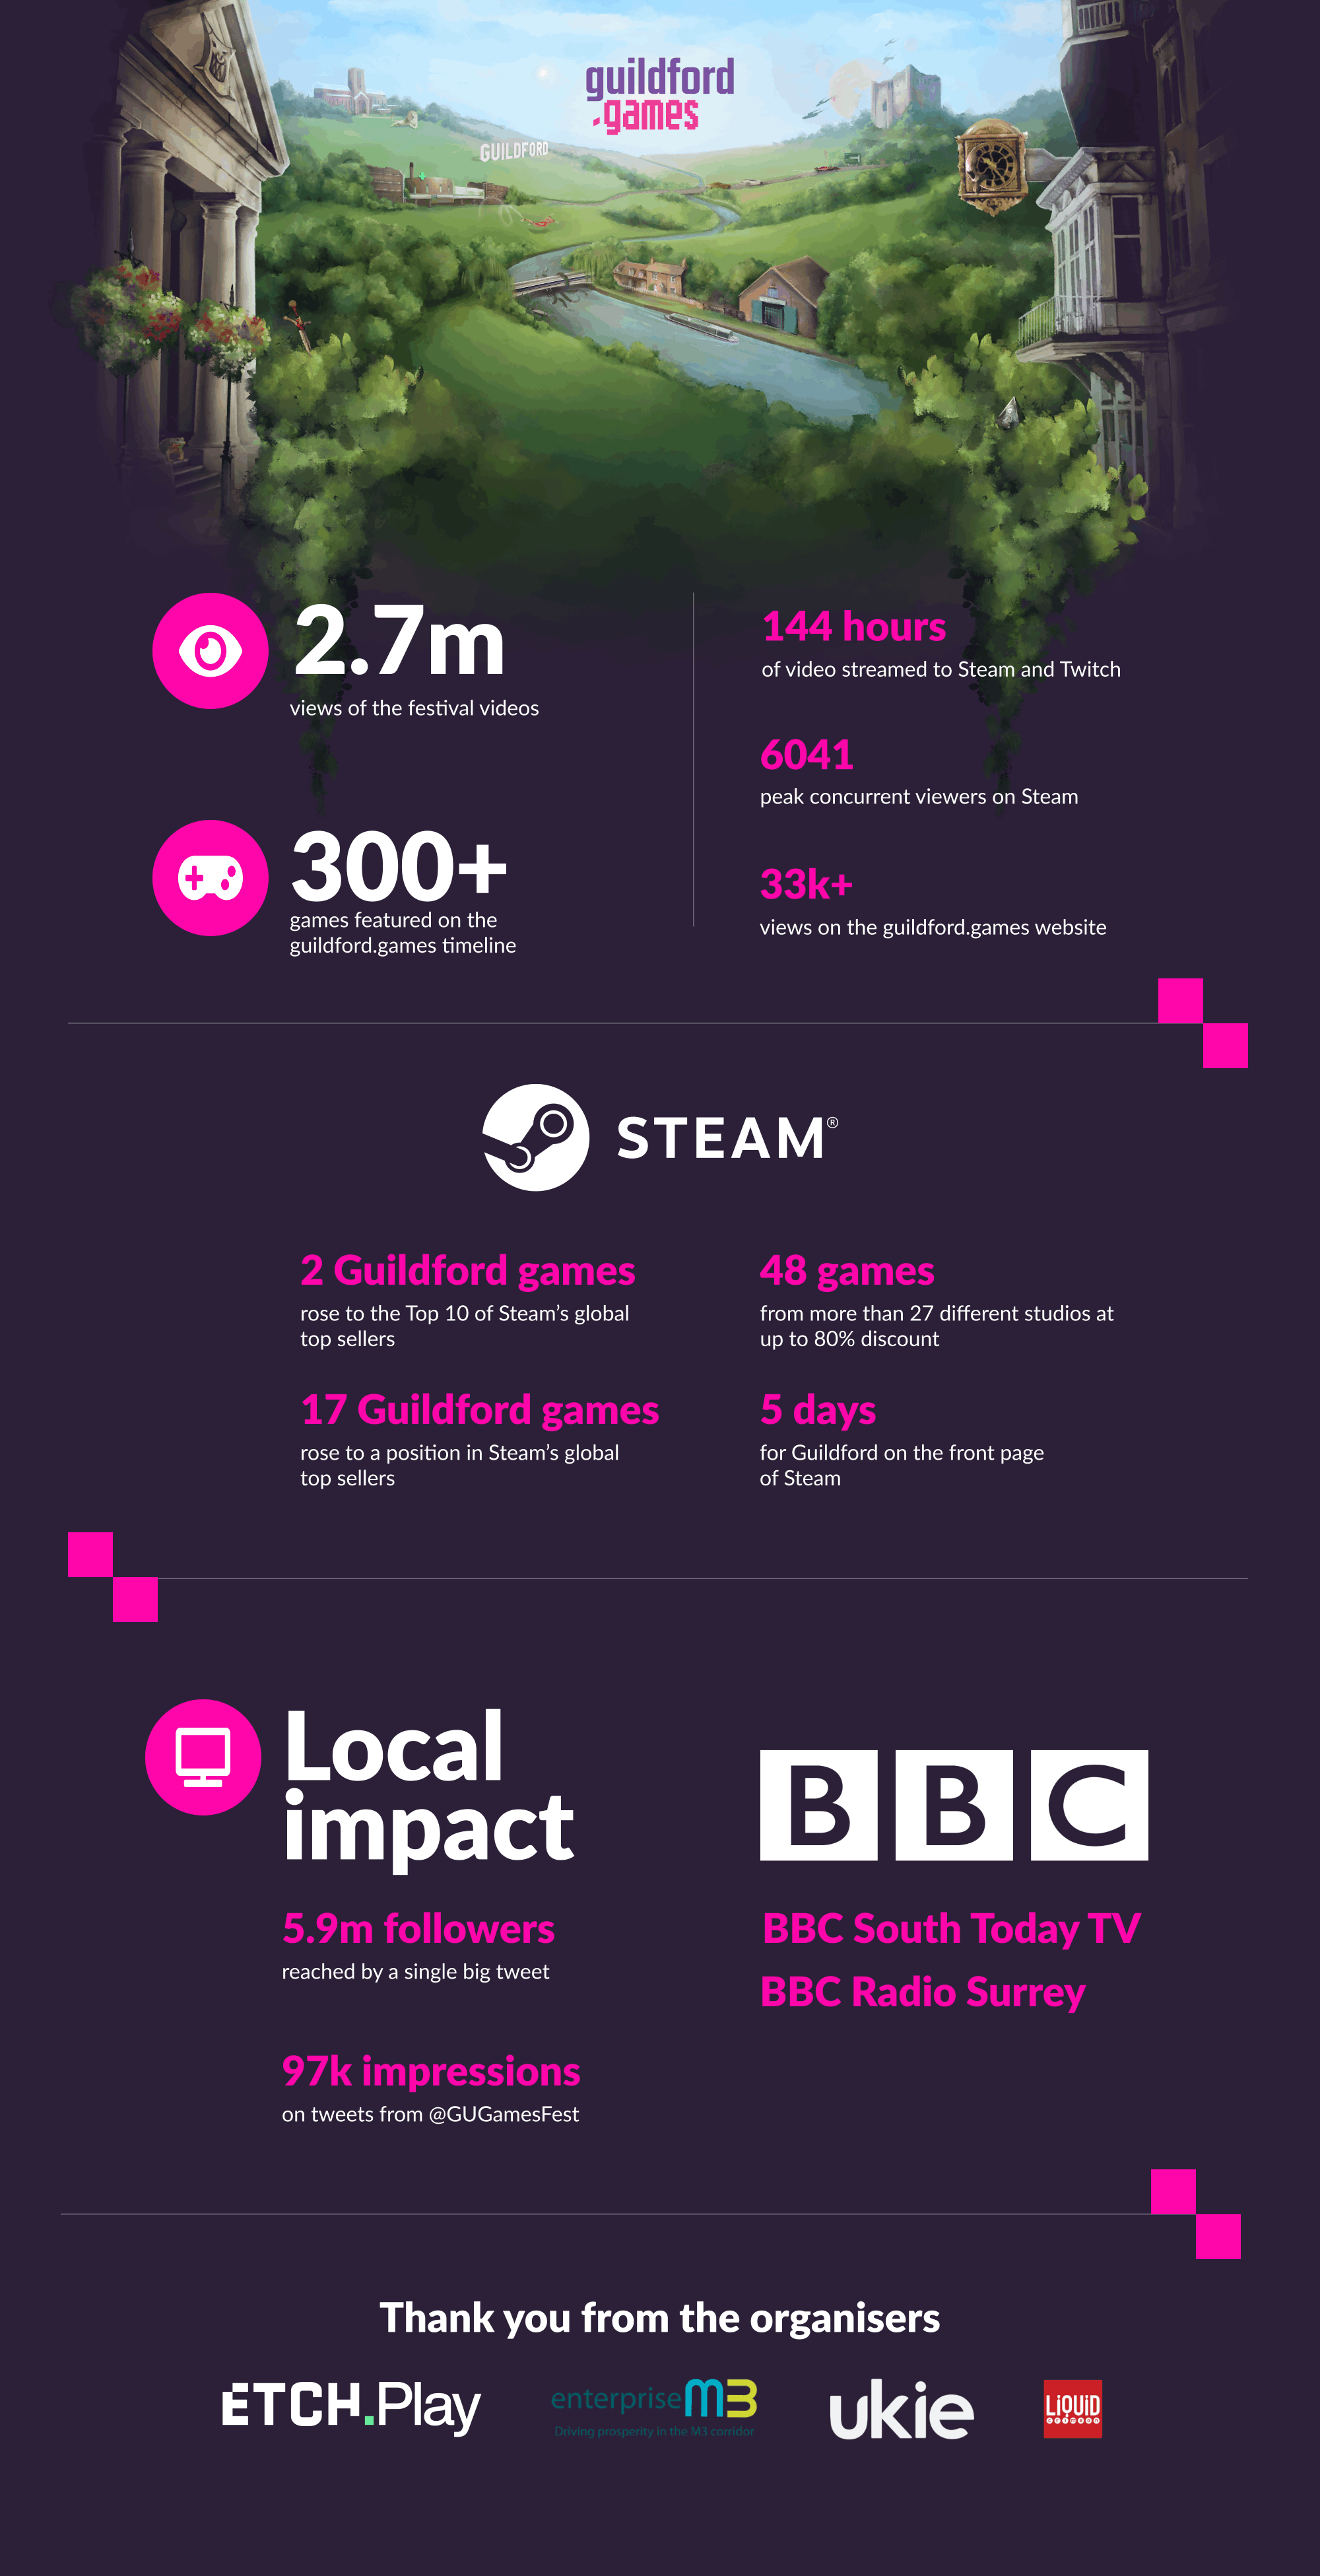 An infographic showing off the stats for the Guildford Games Festival 2020, including 2.7 million views of the video content